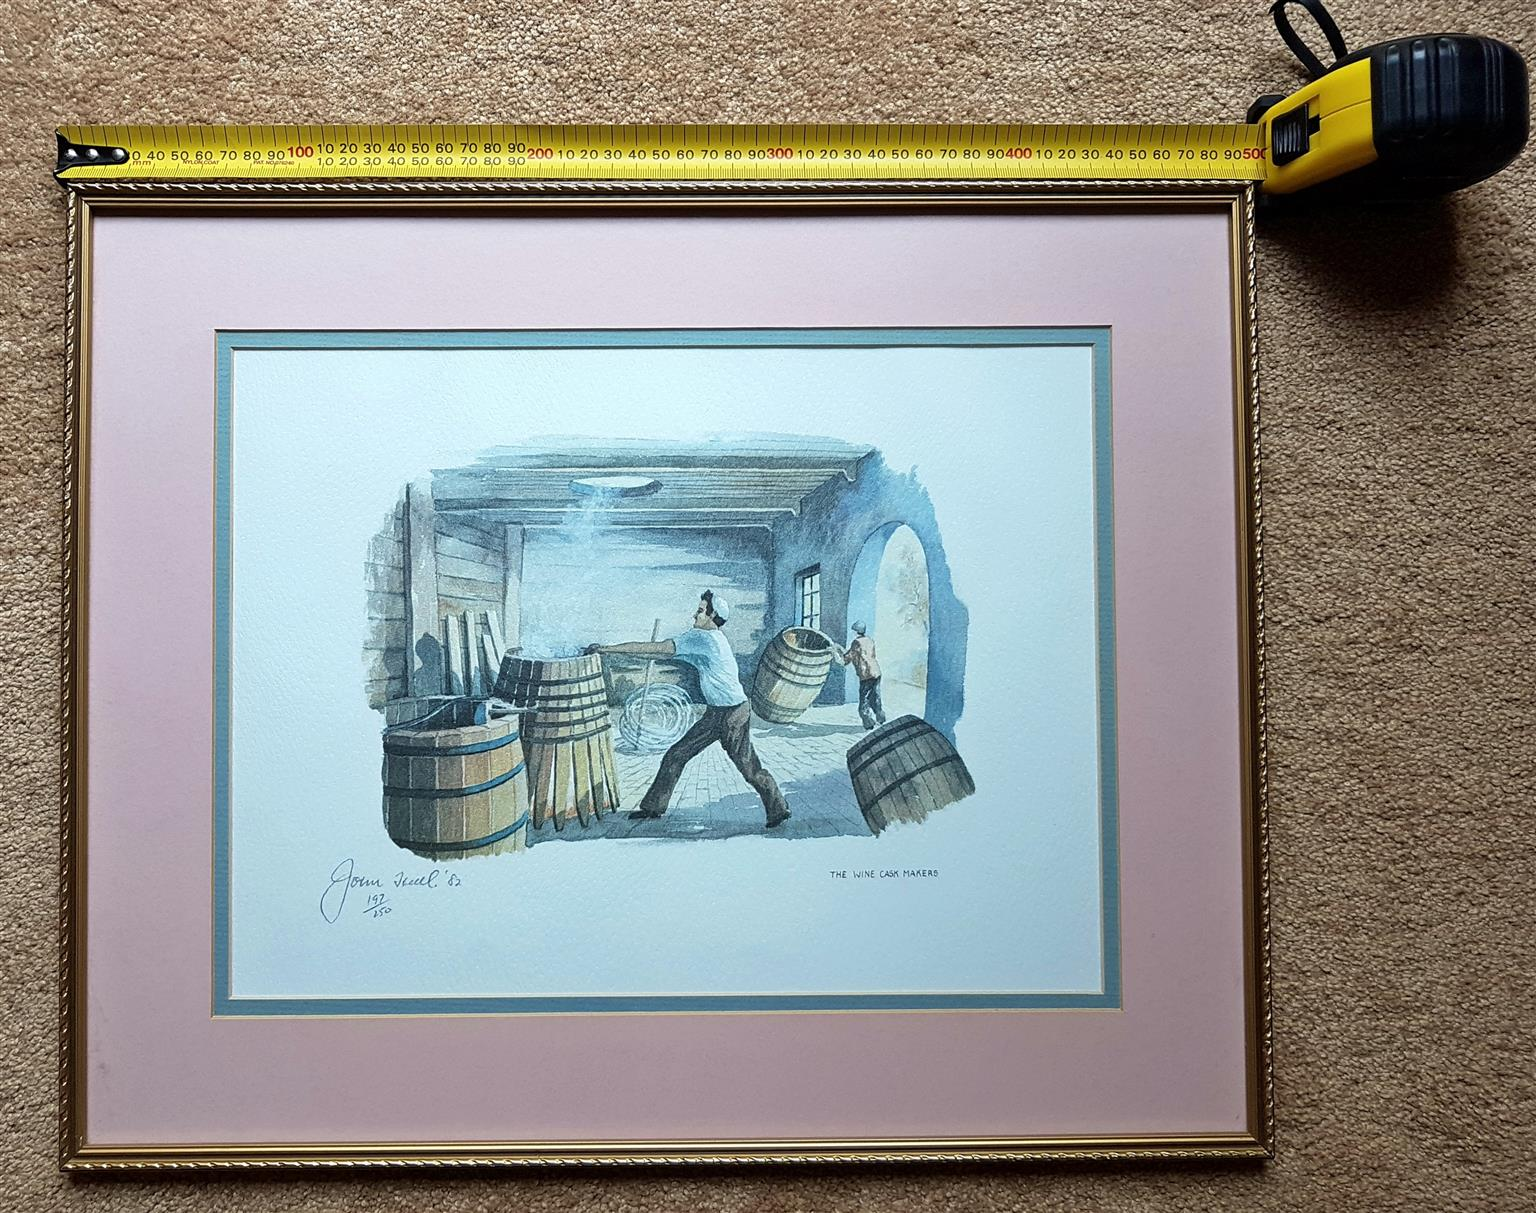 John Hall framed limited edition prints